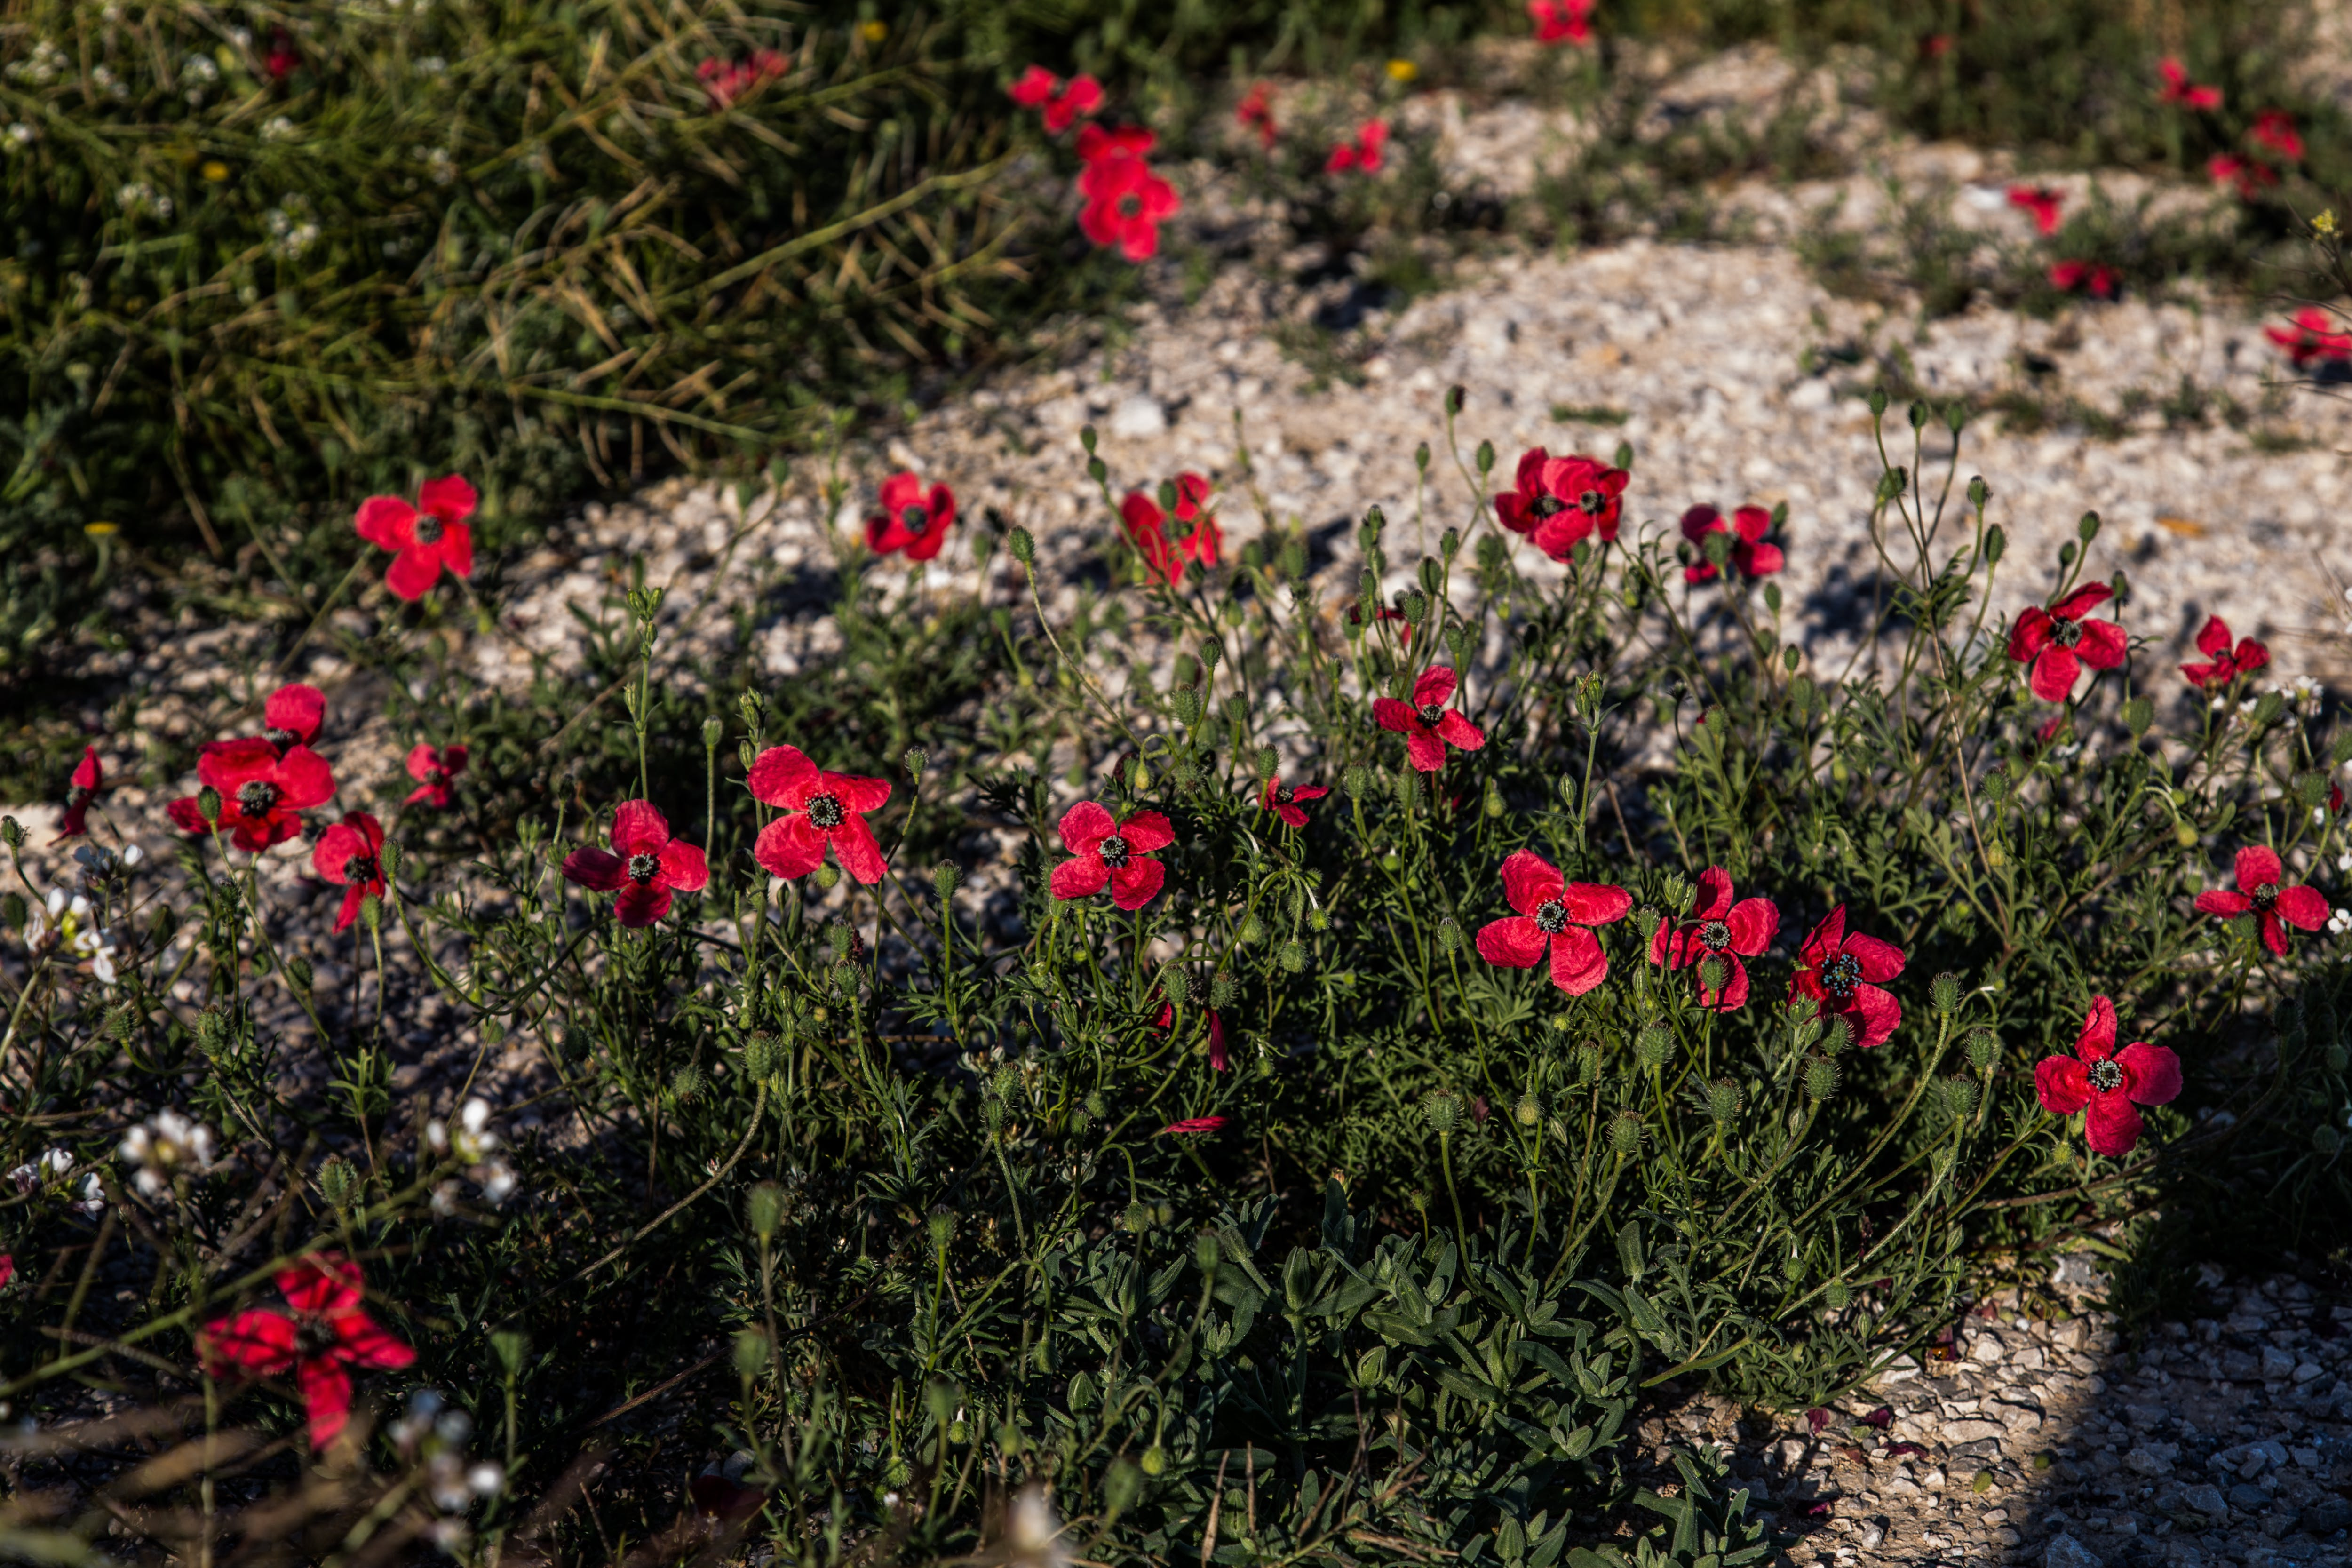 Free stock photo of Flowers without garden, spring